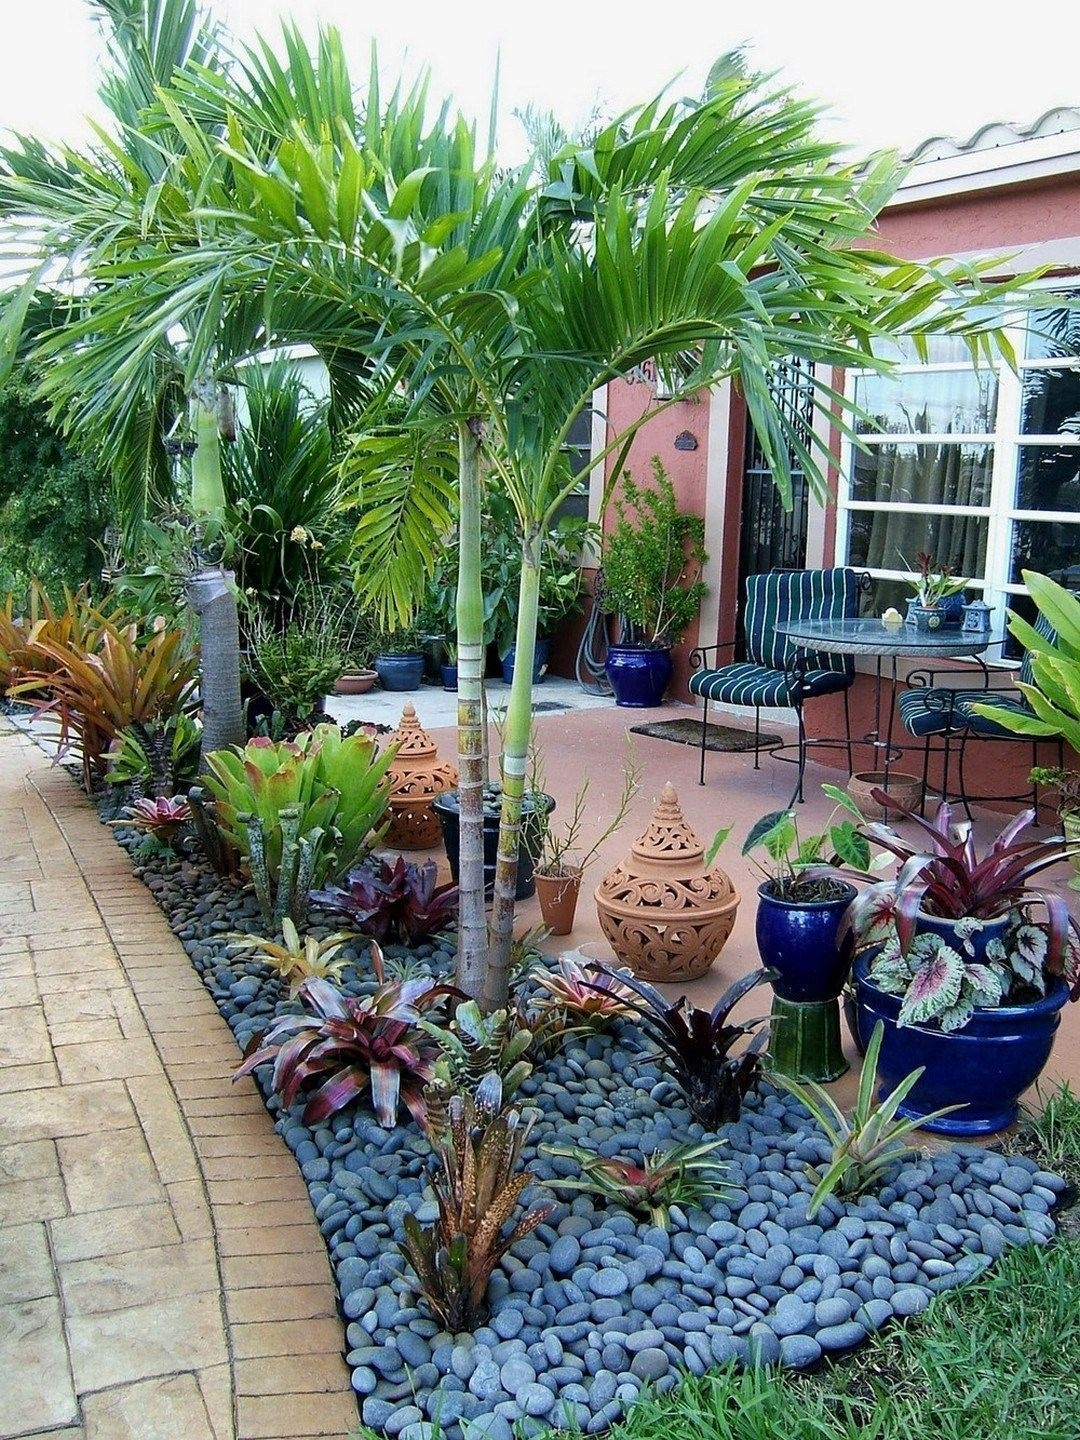 Explore Denaya Marioline S Board Board Garden Edging Ideas On Pinterest See More Ideas Tropical Backyard Landscaping Backyard Landscaping Designs Backyard